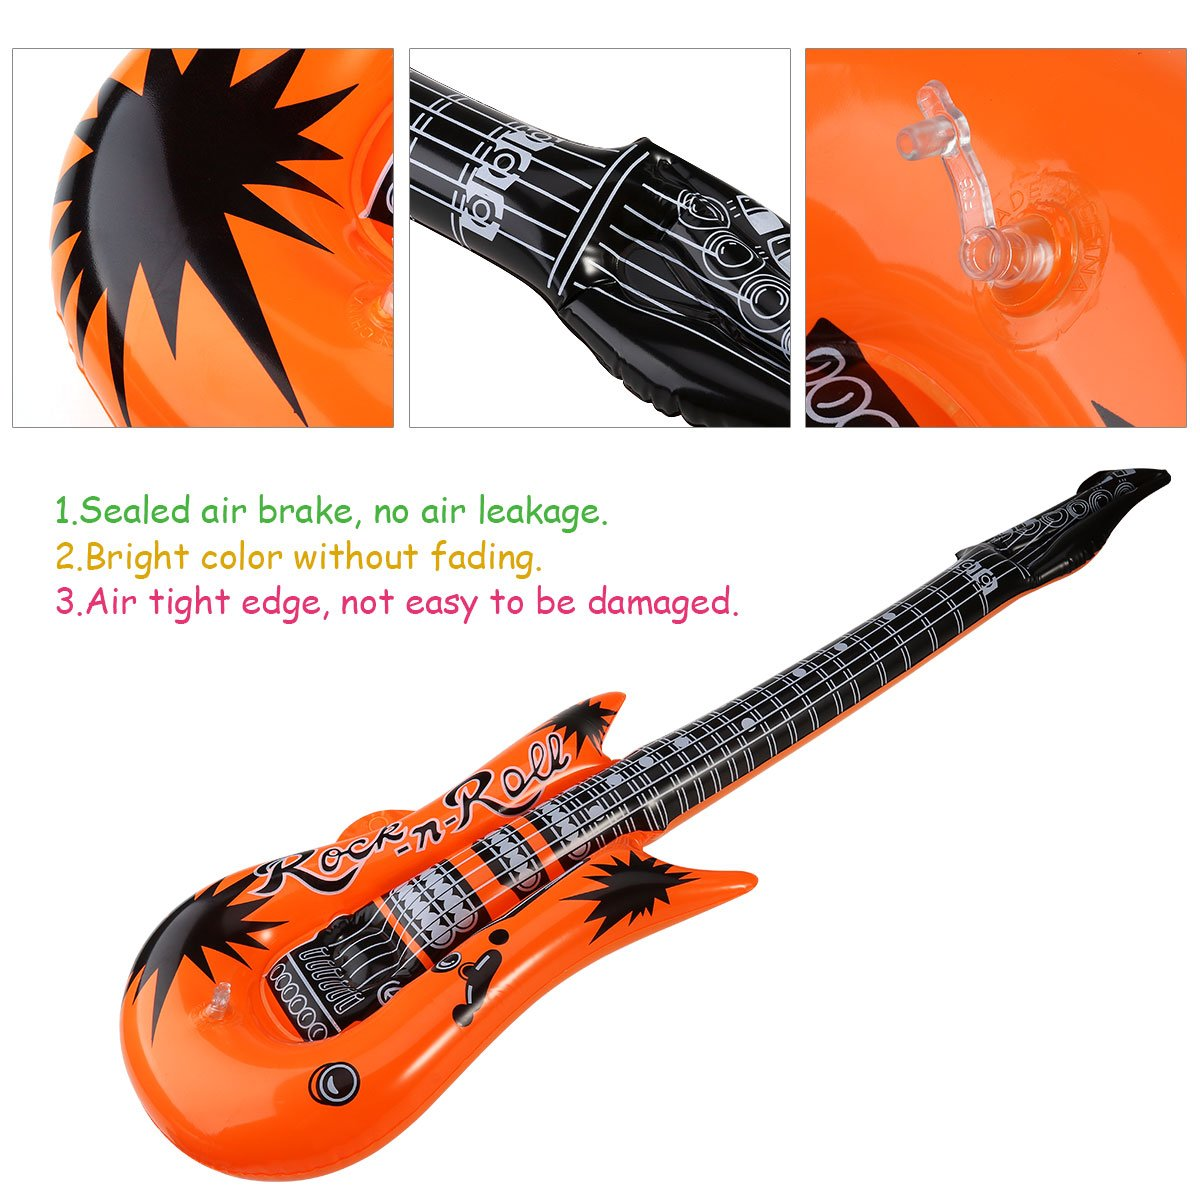 Amazon.com: TOYMYTOY Inflatable Toy Guitar Foil Balloon Rock Instrument Mylar Balloons for Party Decoration Pack of 6 (Random Color): Toys & Games